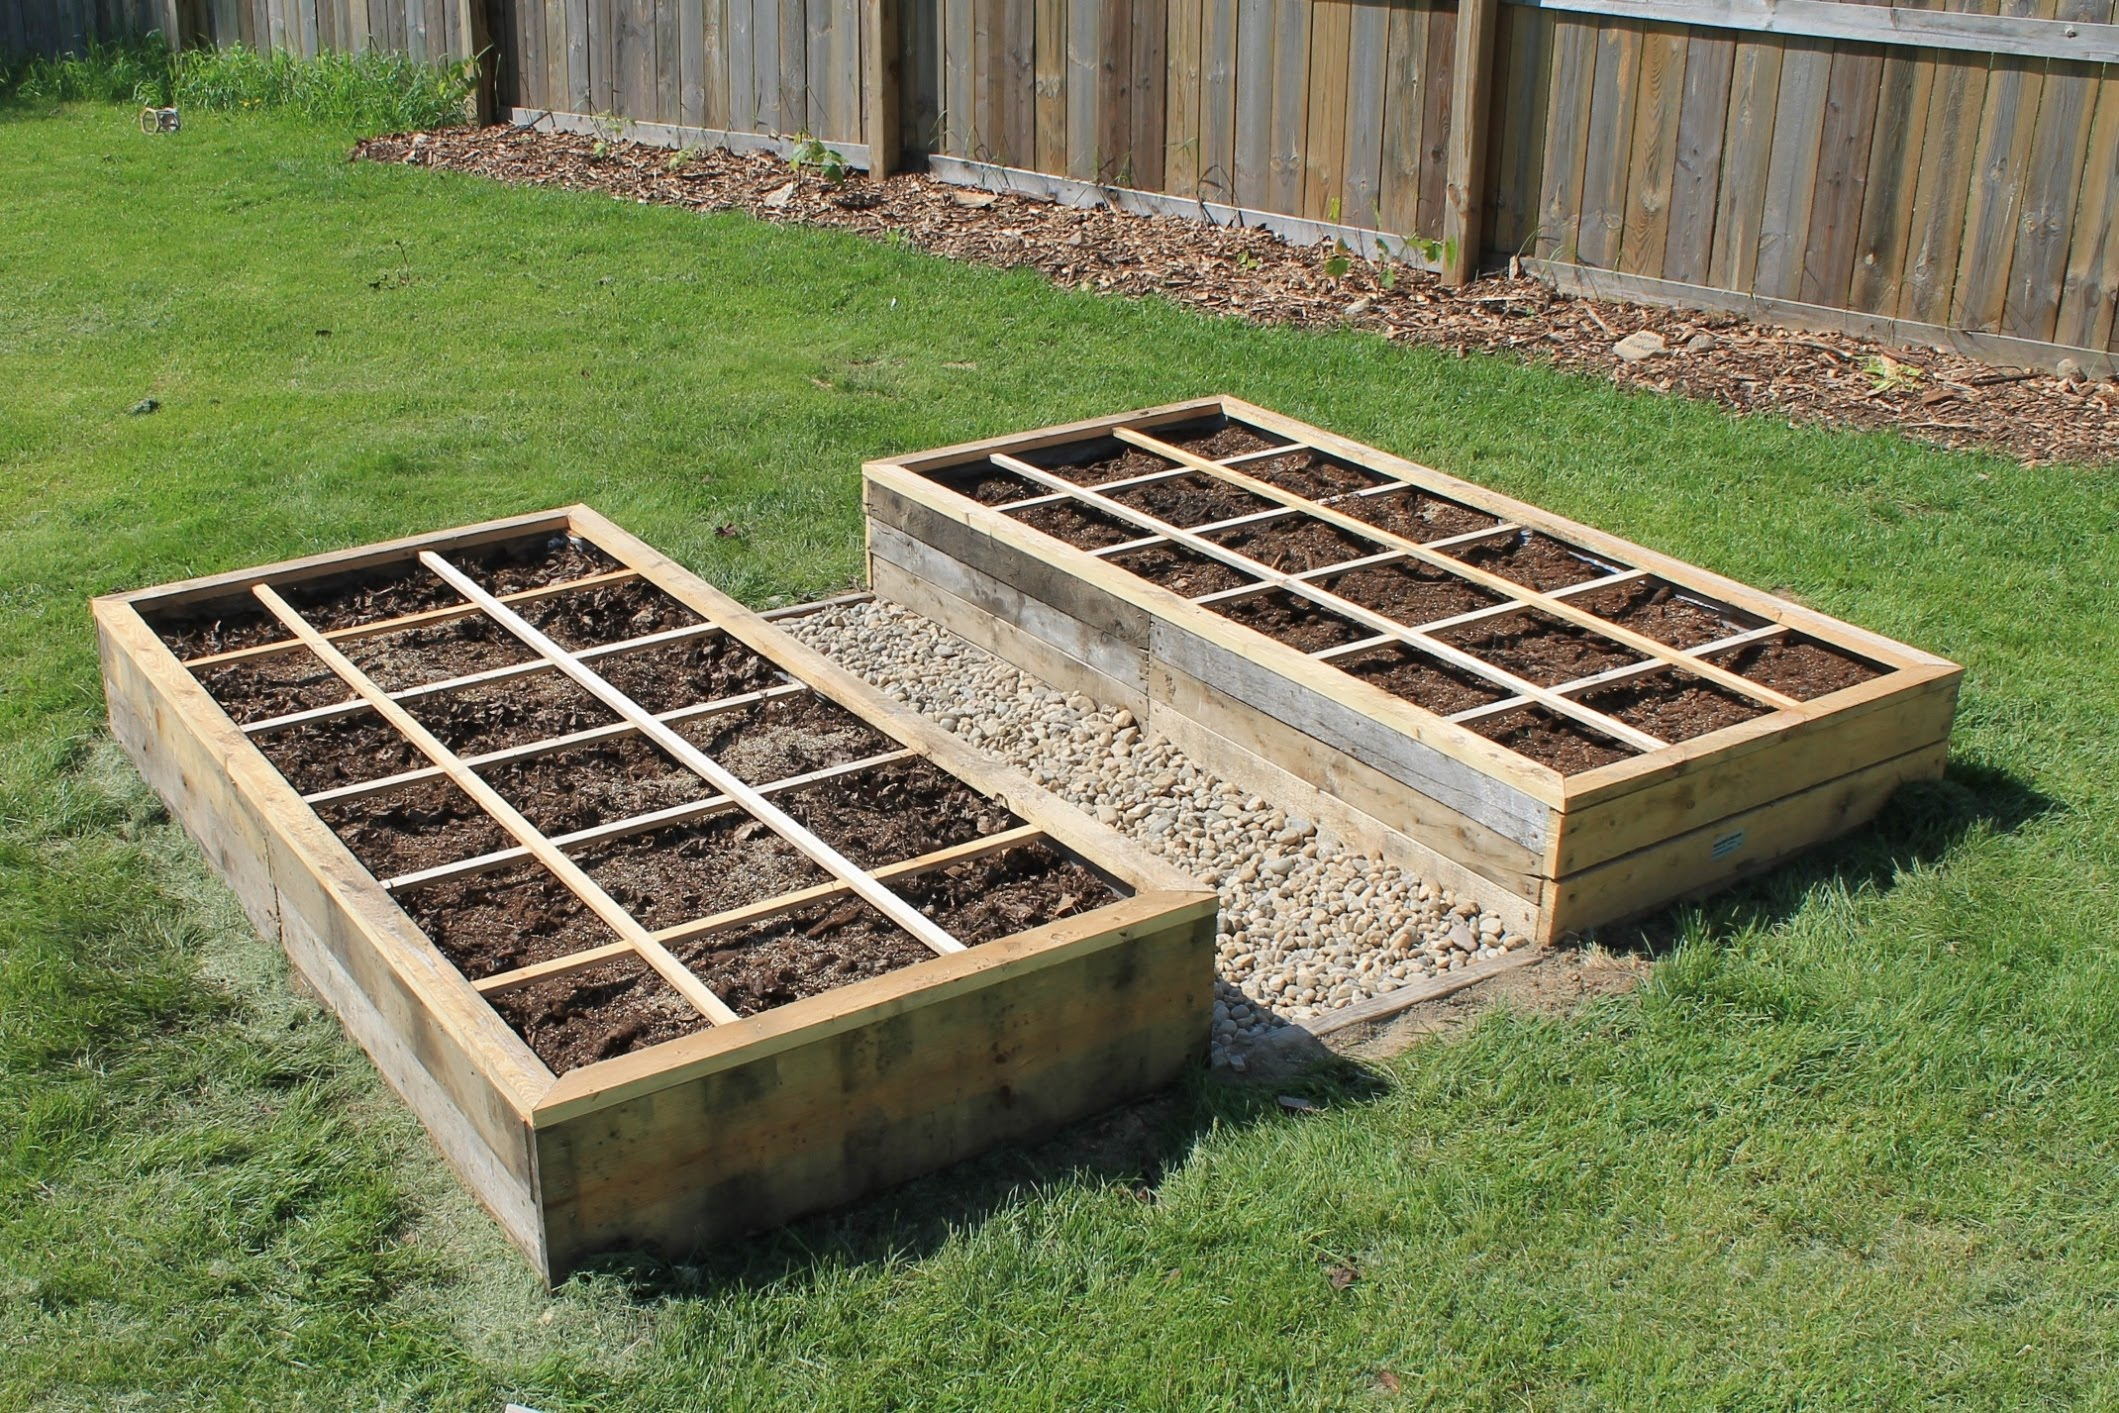 Garden boxes made from pallets